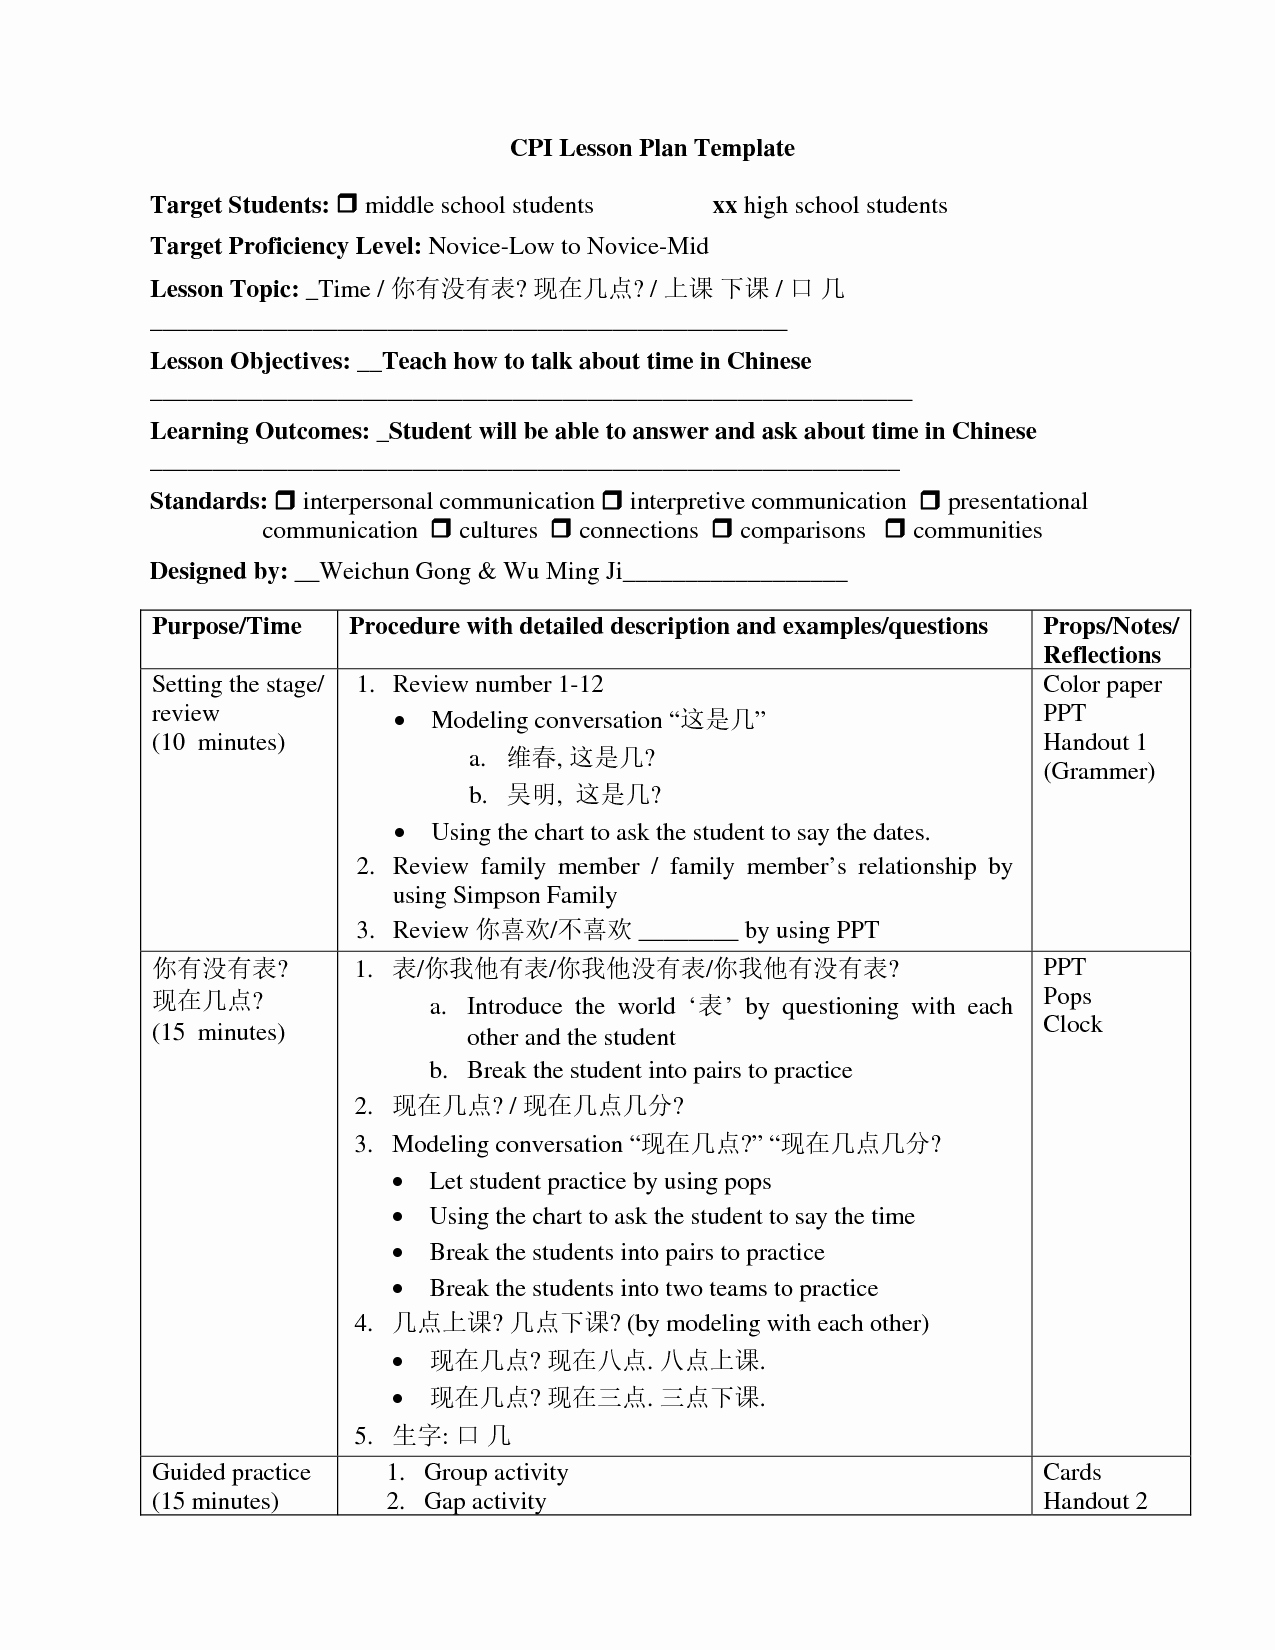 Lesson Plan Template Middle School Luxury Cpi Lesson Plan Template Tar Students Middle School